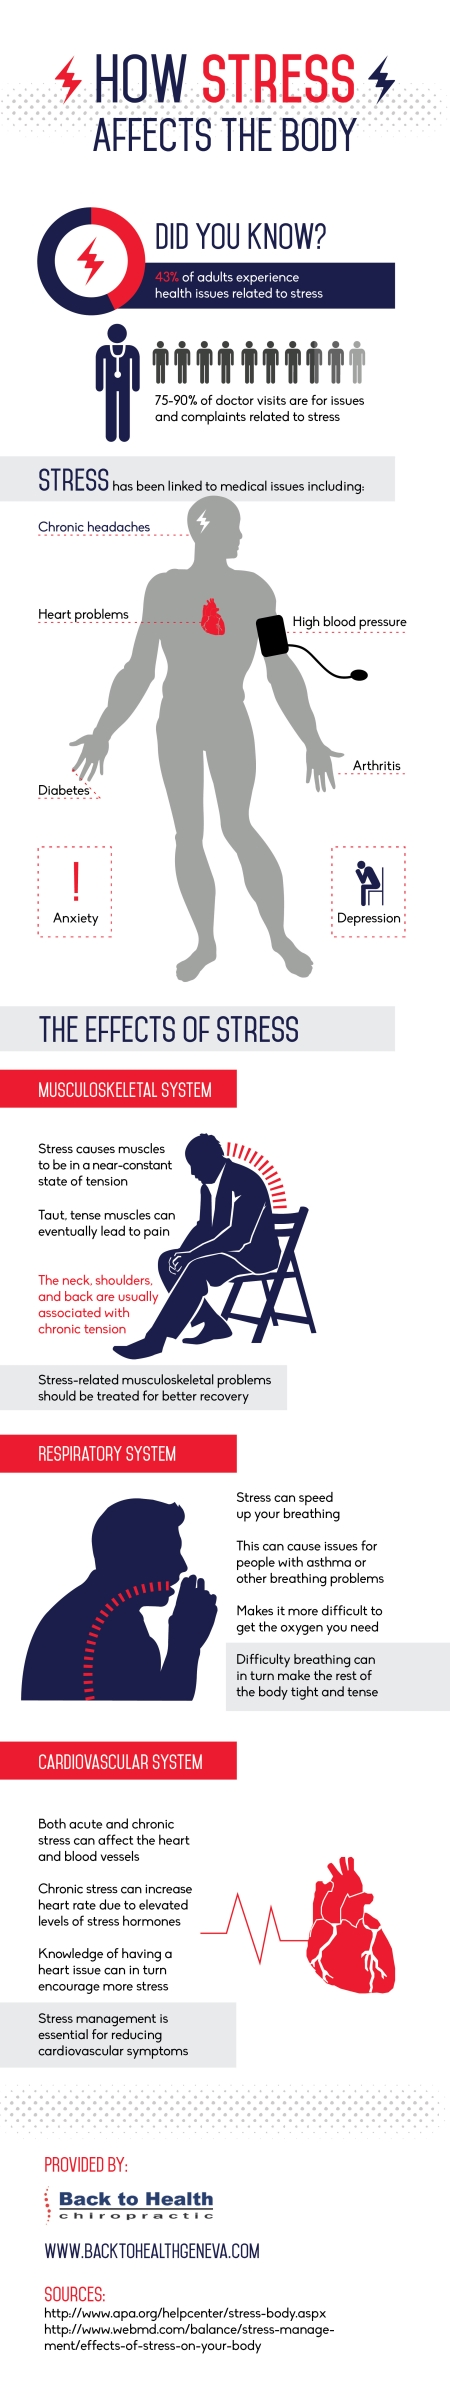 How-Stress-Affects-the-Body-Infographic[1]